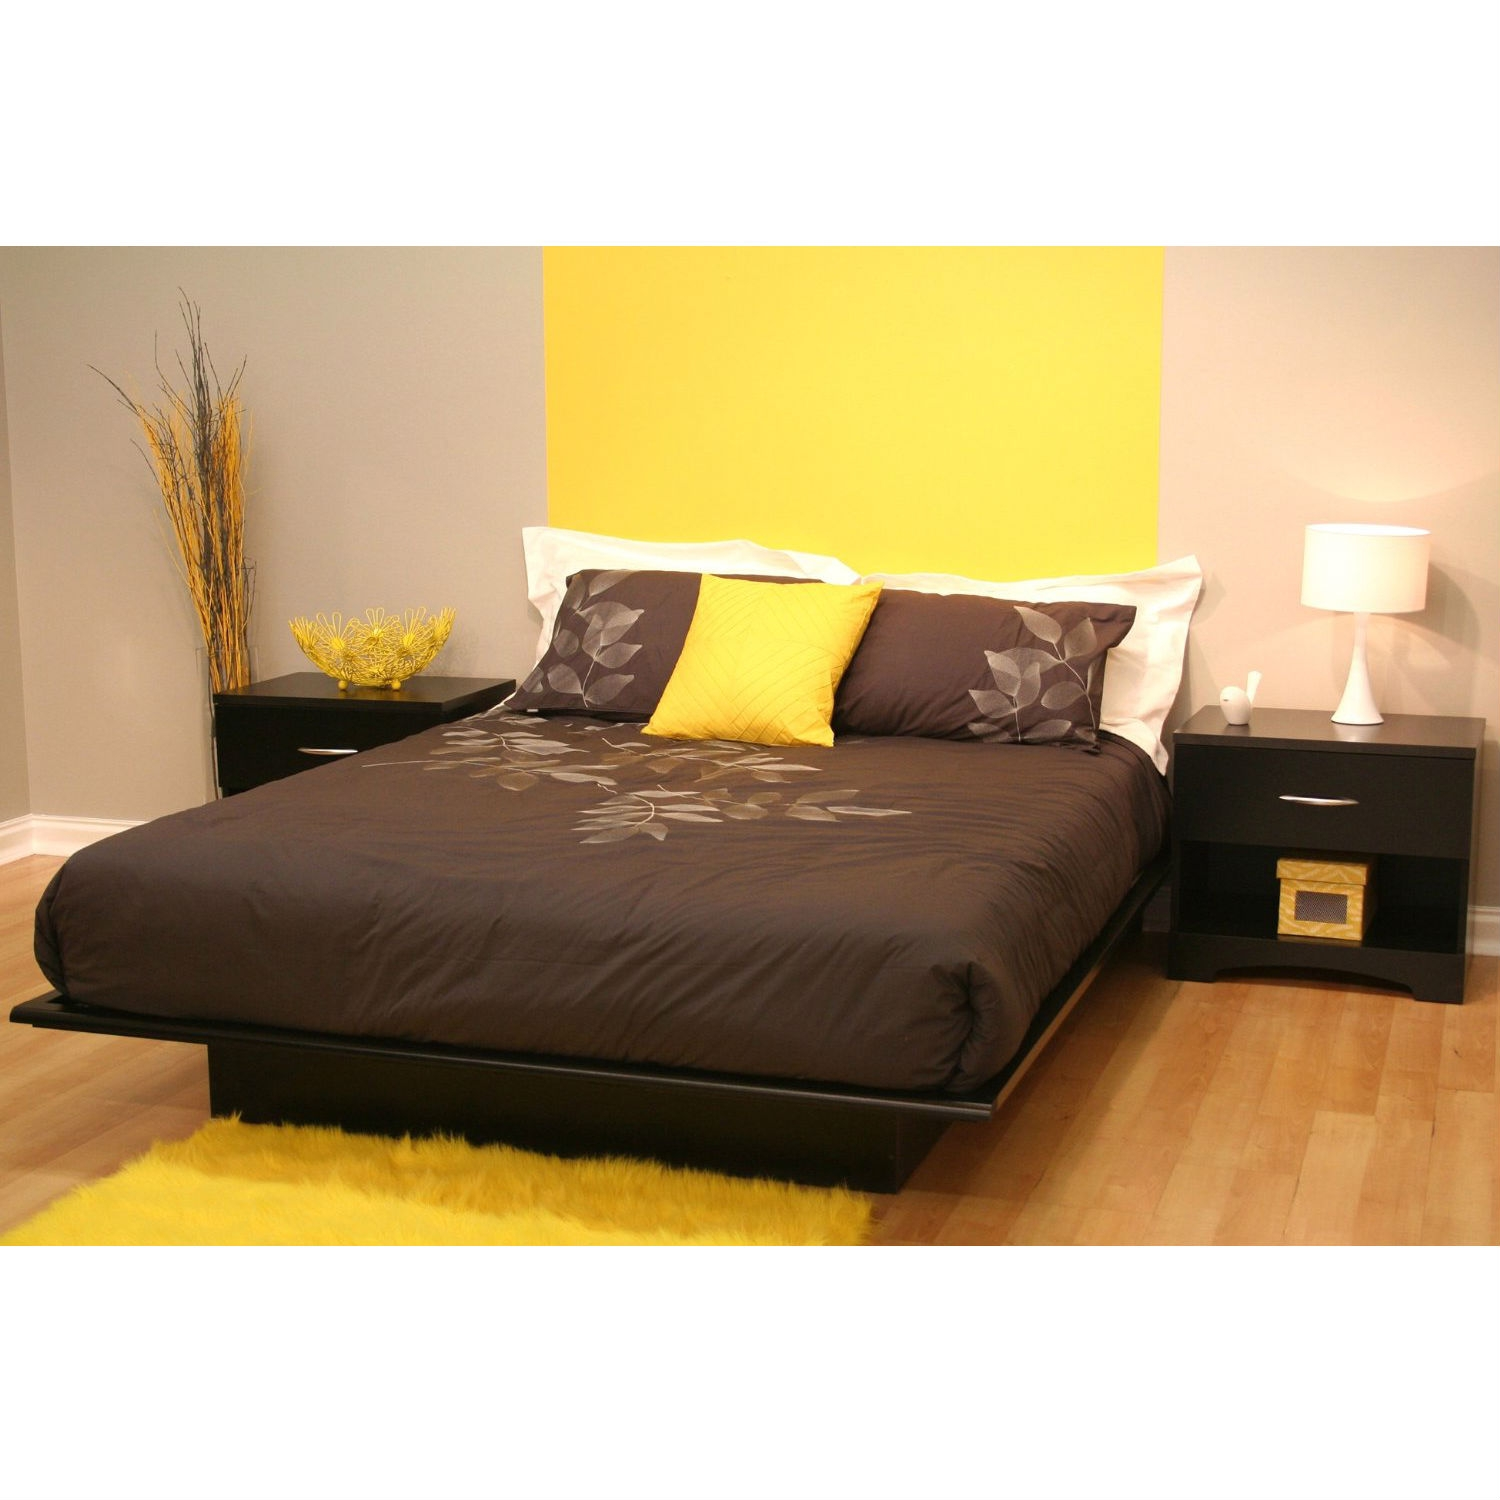 Queen Size Modern Platform Bed Frame In Black Wood Finish